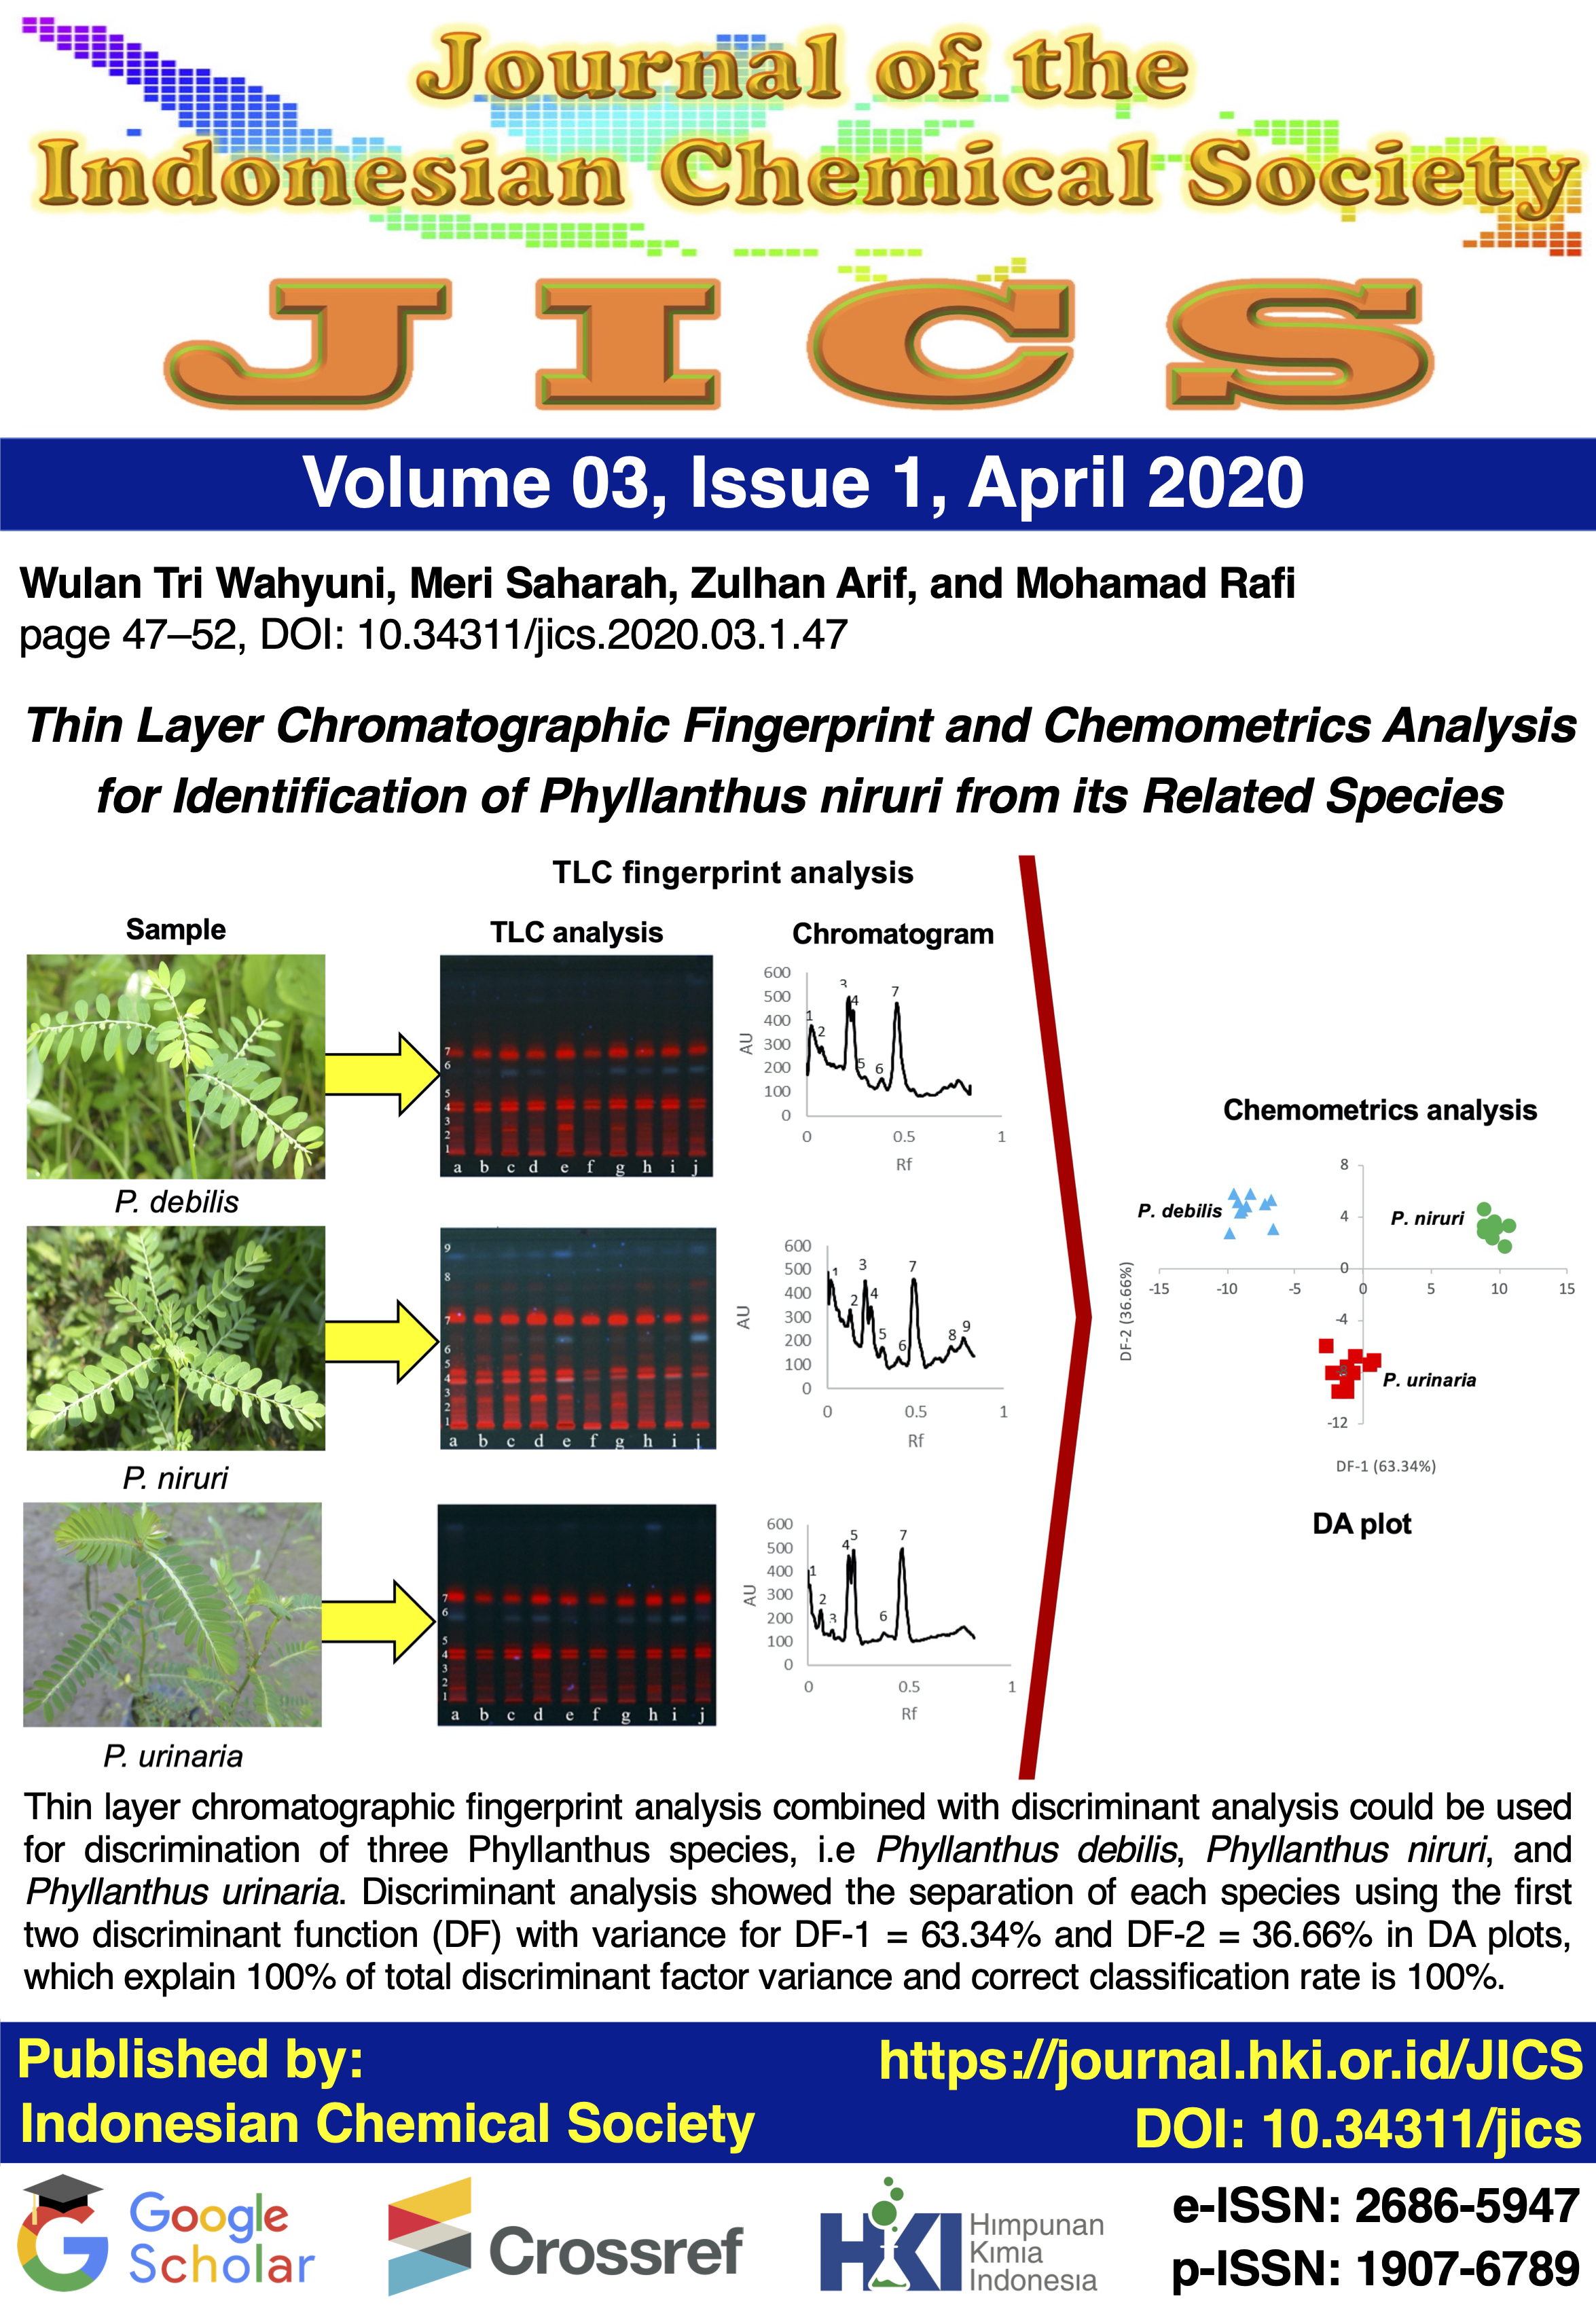 Thin layer chromatographic fingerprint analysis combined with discriminant analysis could be used for discrimination of three Phyllanthus species, i.e Phyllanthus debilis, Phyllanthus niruri, and Phyllanthus urinaria.